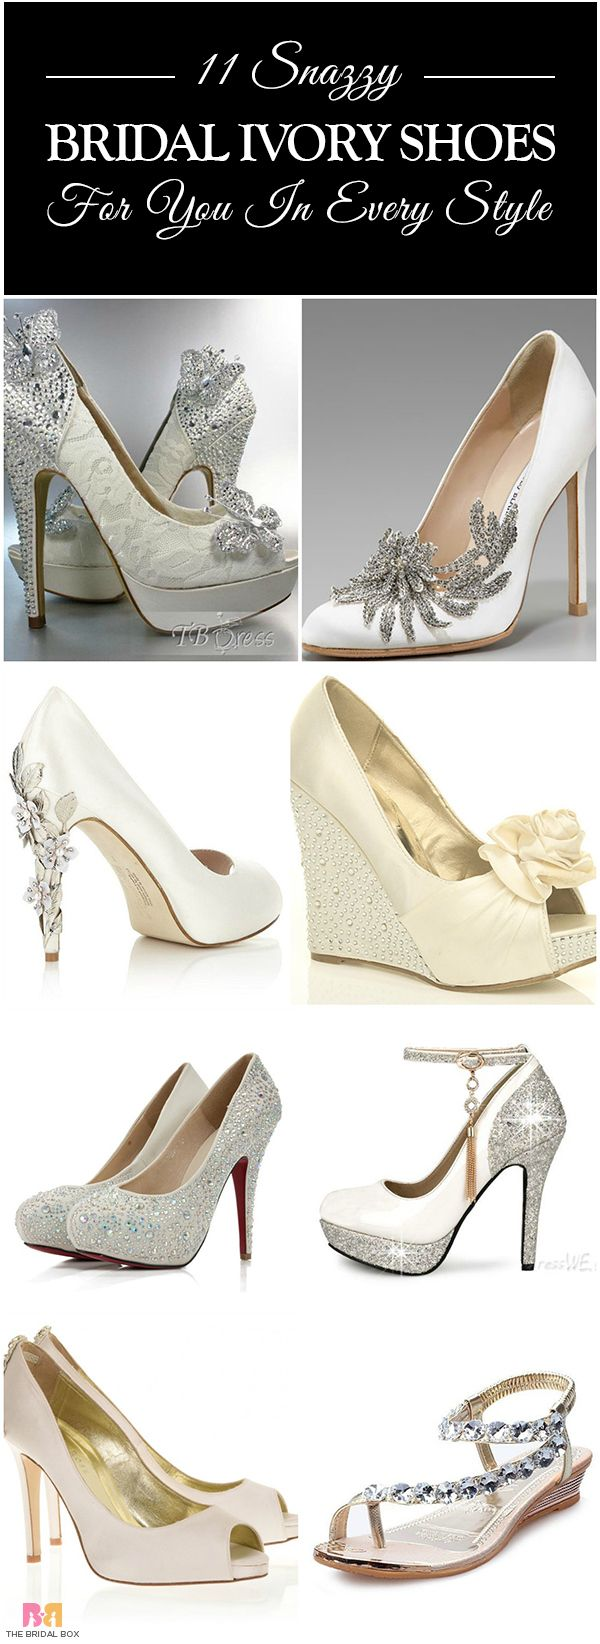 The snazziest line-up of gorgeous bridal ivory shoes that will have the bride looking stunning, and the bridesmaids eagerly awaiting their wedding!